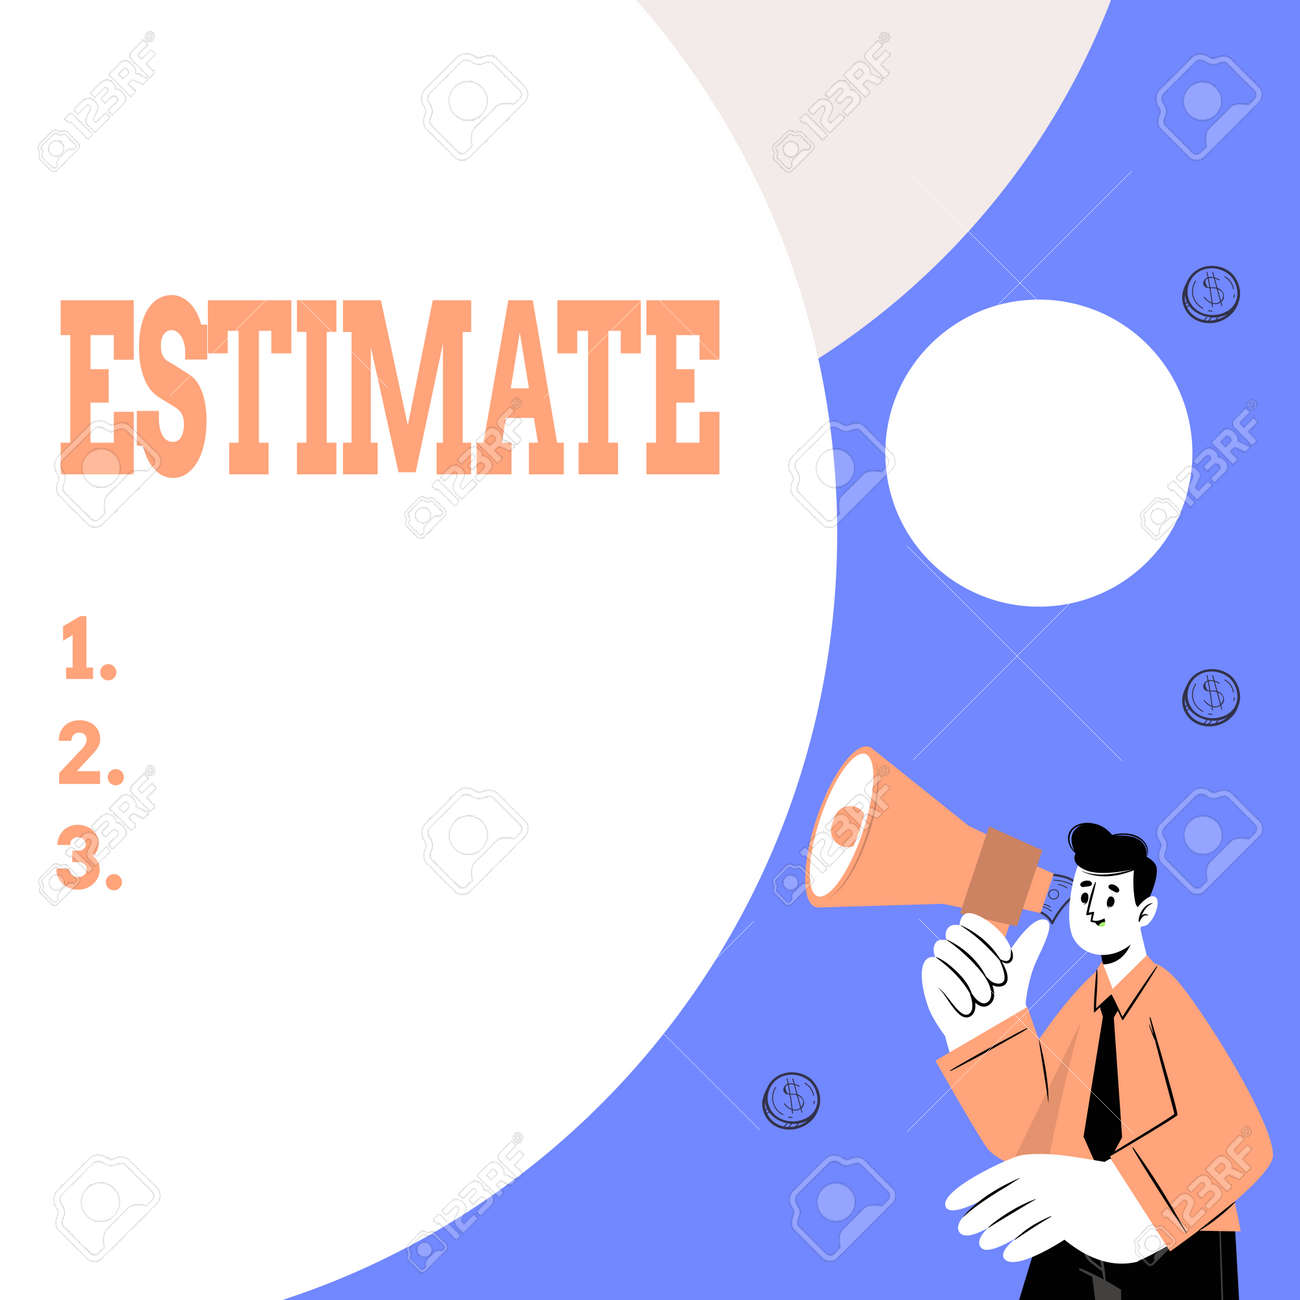 Inspiration showing sign Estimate. Business showcase calculate or assess approximately the value number quantity Abstract Displaying Different Typing Method, Keyboard Data Processing - 172119604